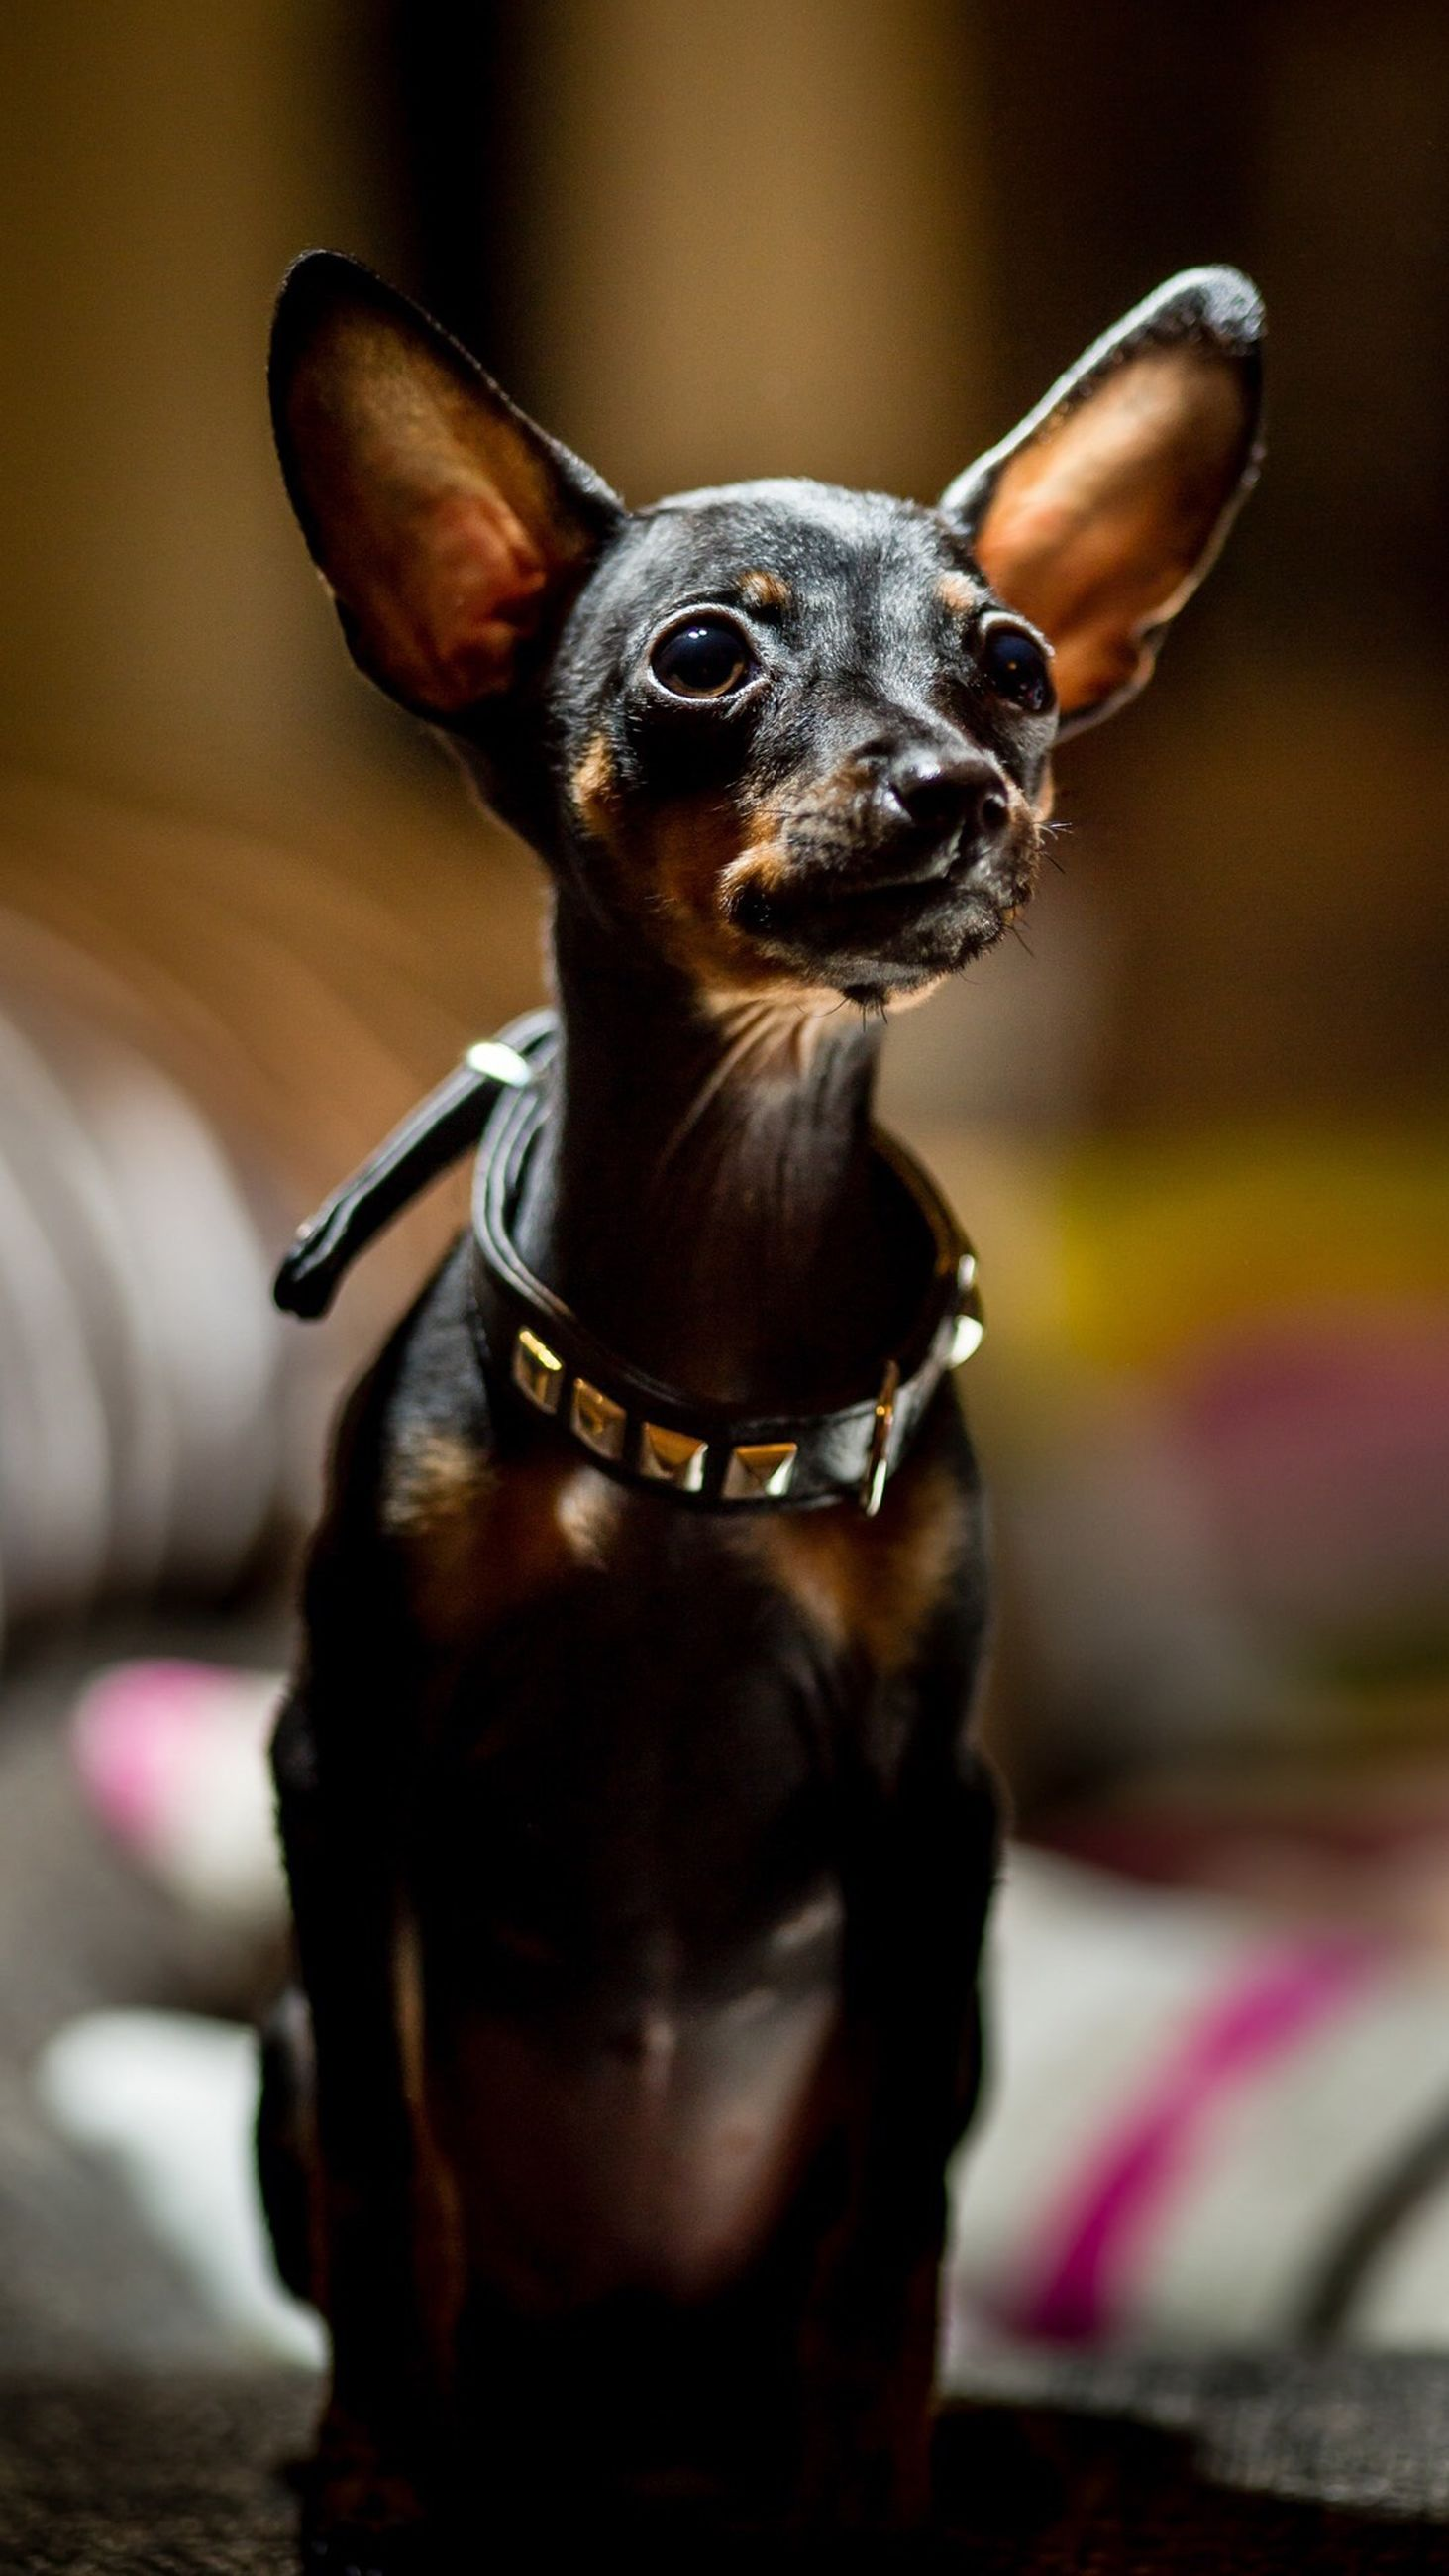 one animal, animal themes, focus on foreground, close-up, animals in the wild, wildlife, insect, indoors, selective focus, pets, dog, domestic animals, day, no people, zoology, animal body part, animal head, portrait, front view